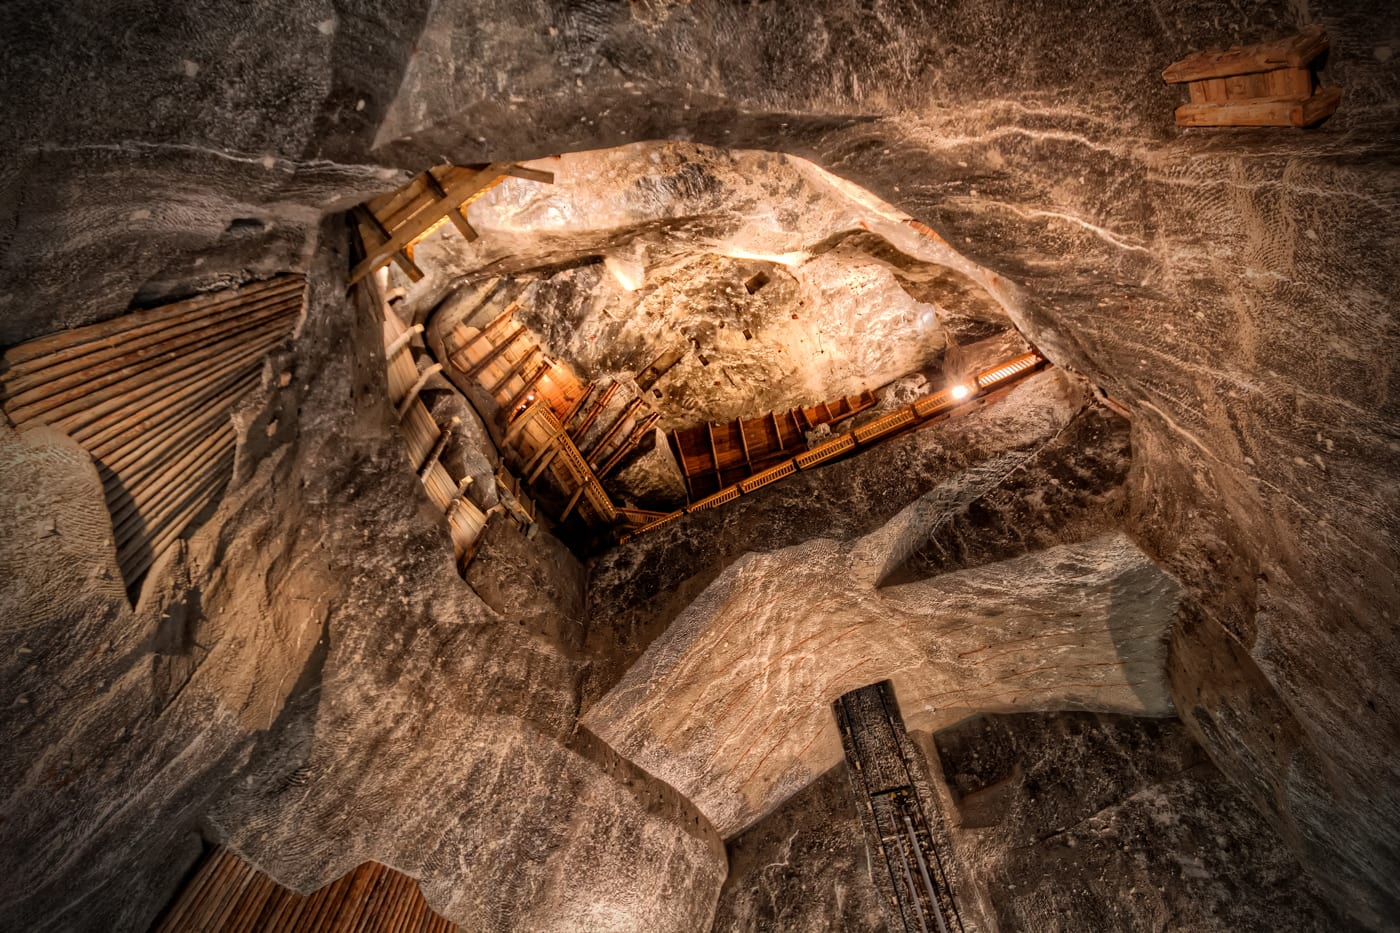 Stanislaw Staszic Chamber in the Wieliczka Salt Mine. Wieliczka, a village in Poland, was one of the first UNESCO World Heritage Sites.